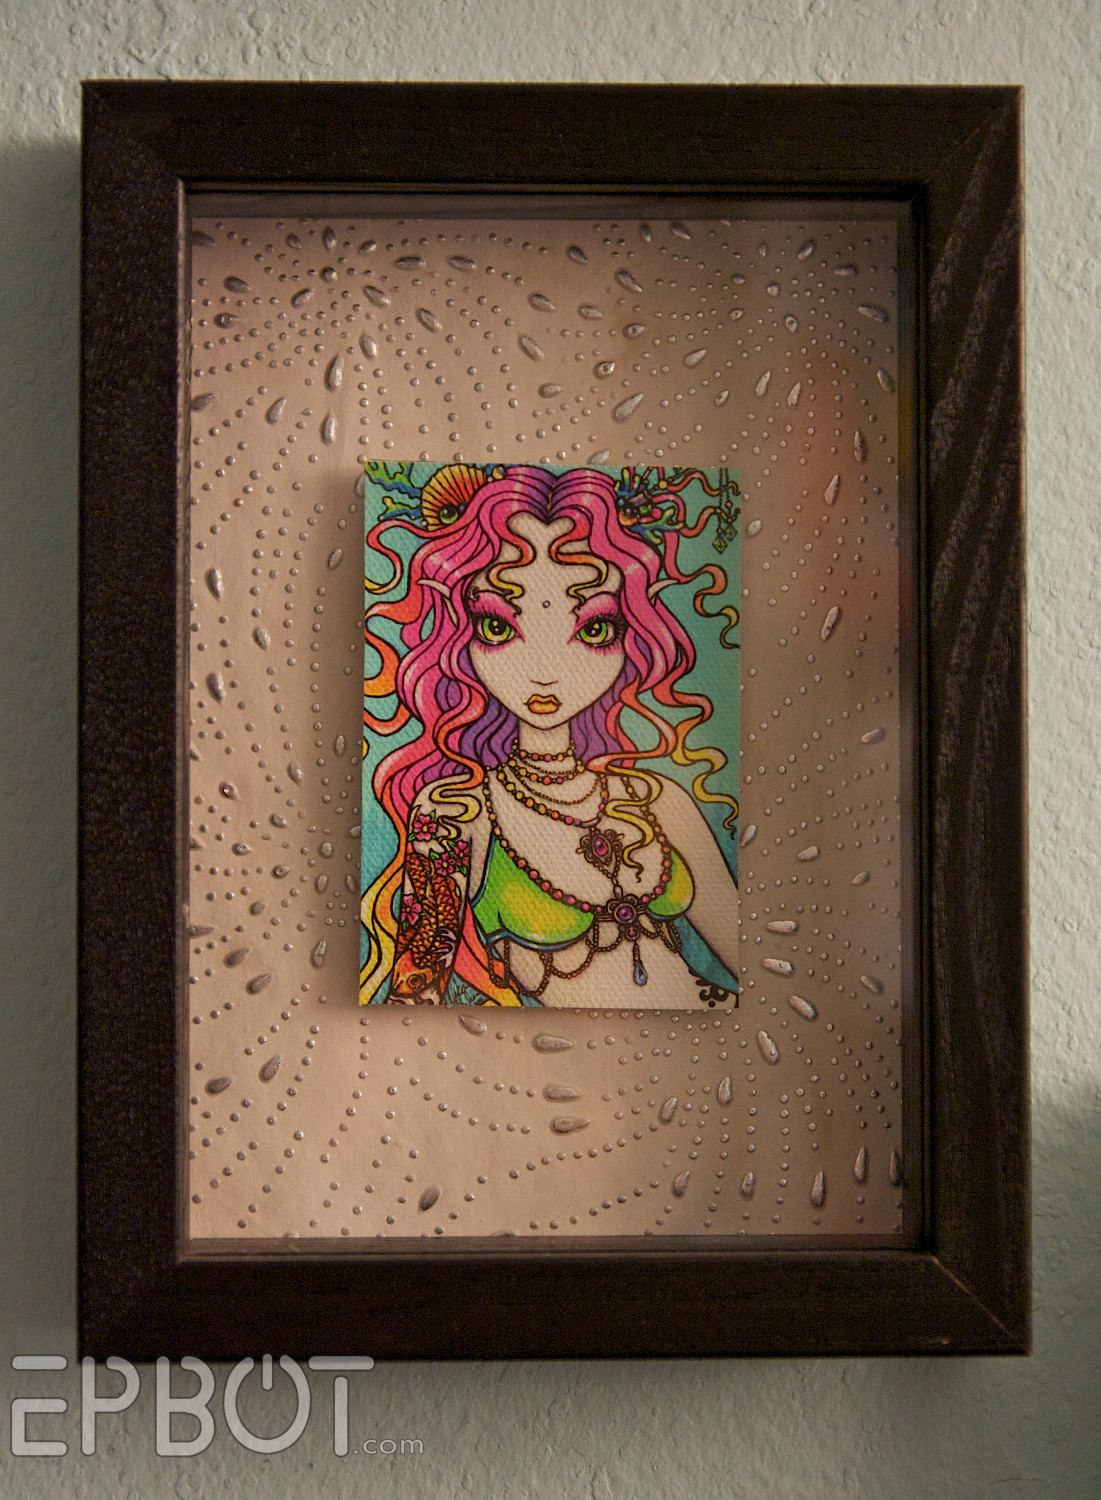 Best ideas about DIY Shadow Box Frame . Save or Pin EPBOT Turn Any Fat Frame Into a Shadowbox Frame Now.